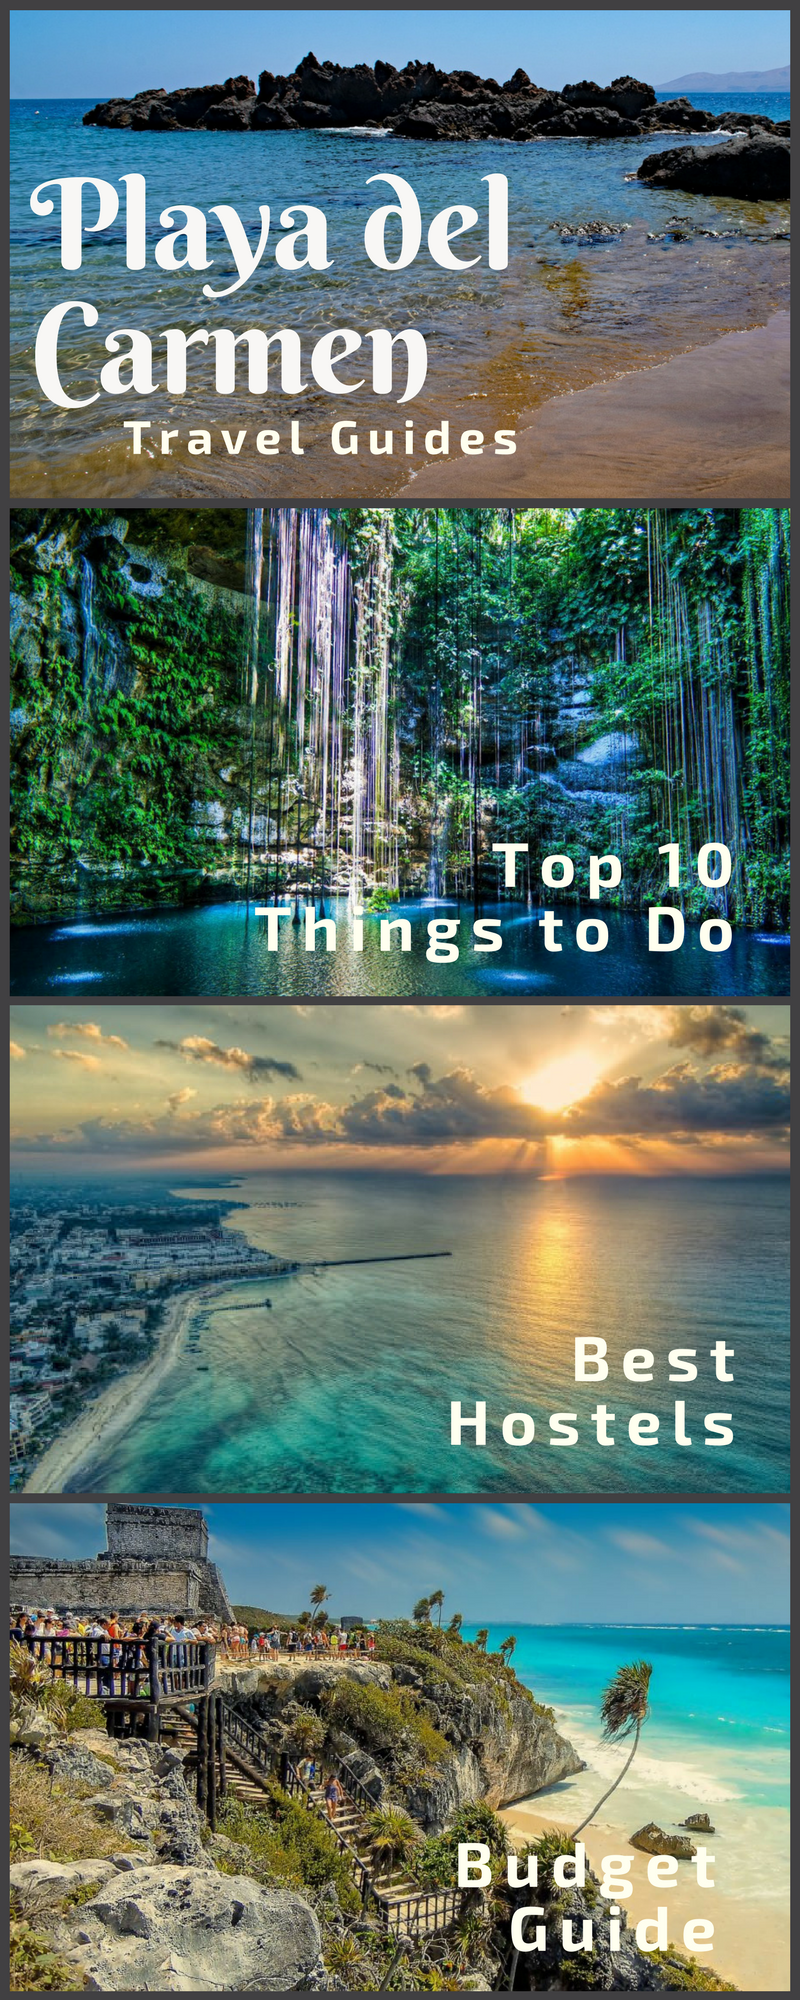 Playa del Carmen Travel Guide Four great articles with all the tips you need to travel to Playa del Carmen Mexico!